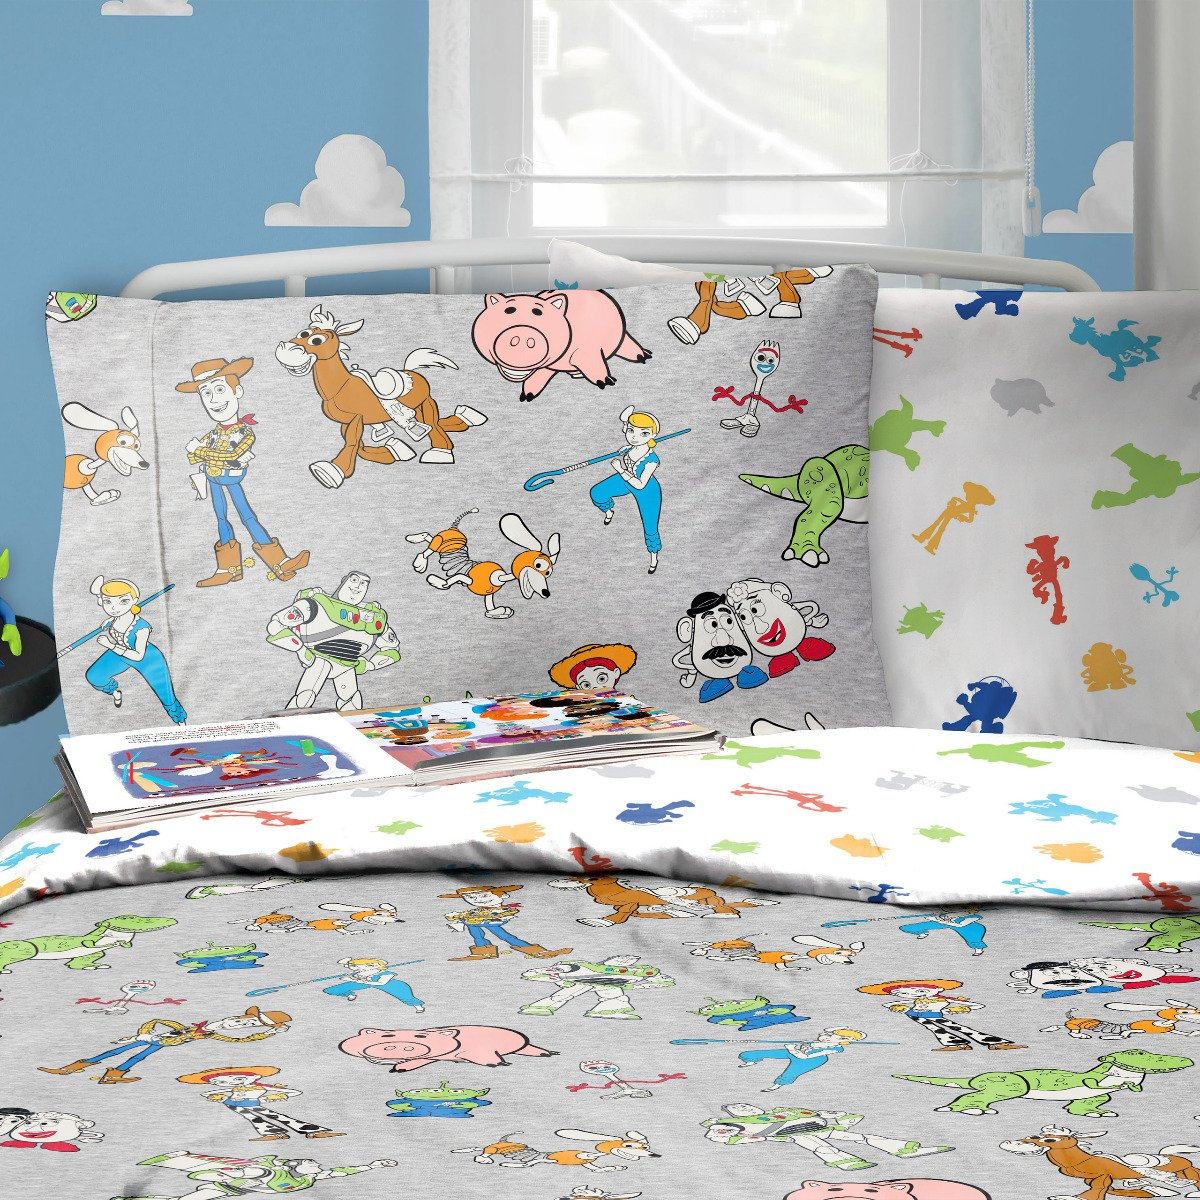 Toy Story Toys Are Back In Town Bedding - Reversible Duvet Cover and Pillowcase Set